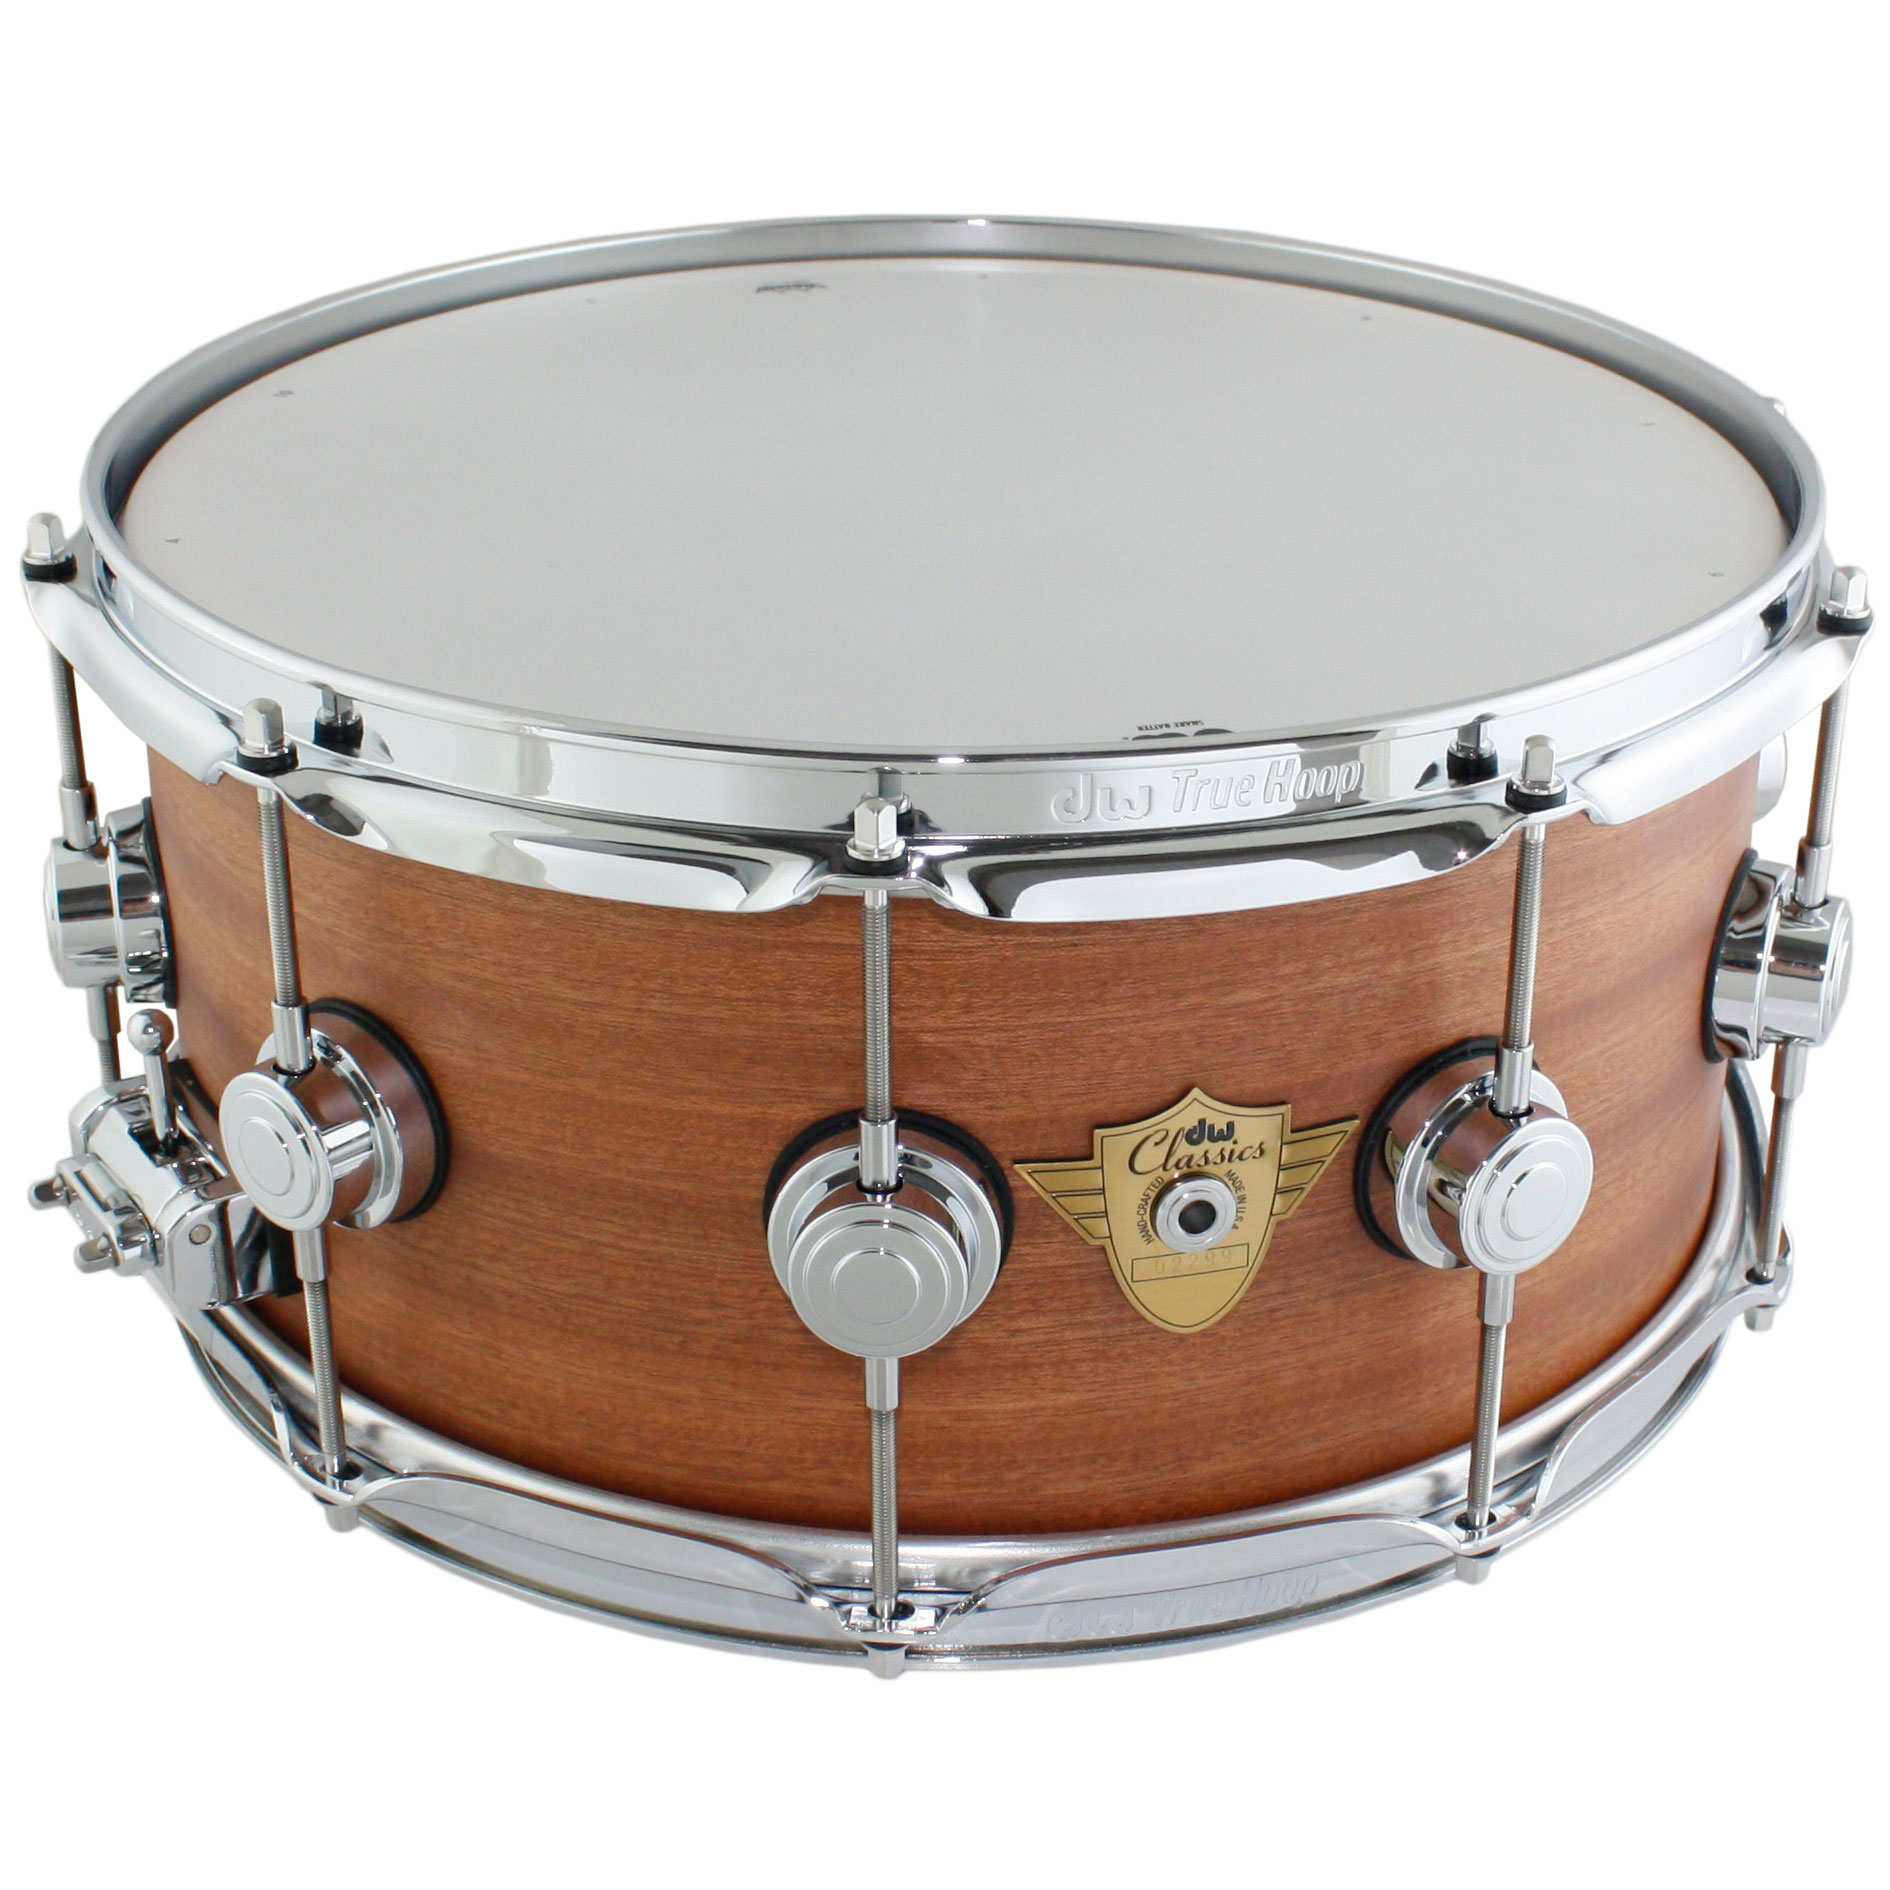 "DW 6.5"" x 14"" Classic Series Natural Hard Satin Snare Drum"